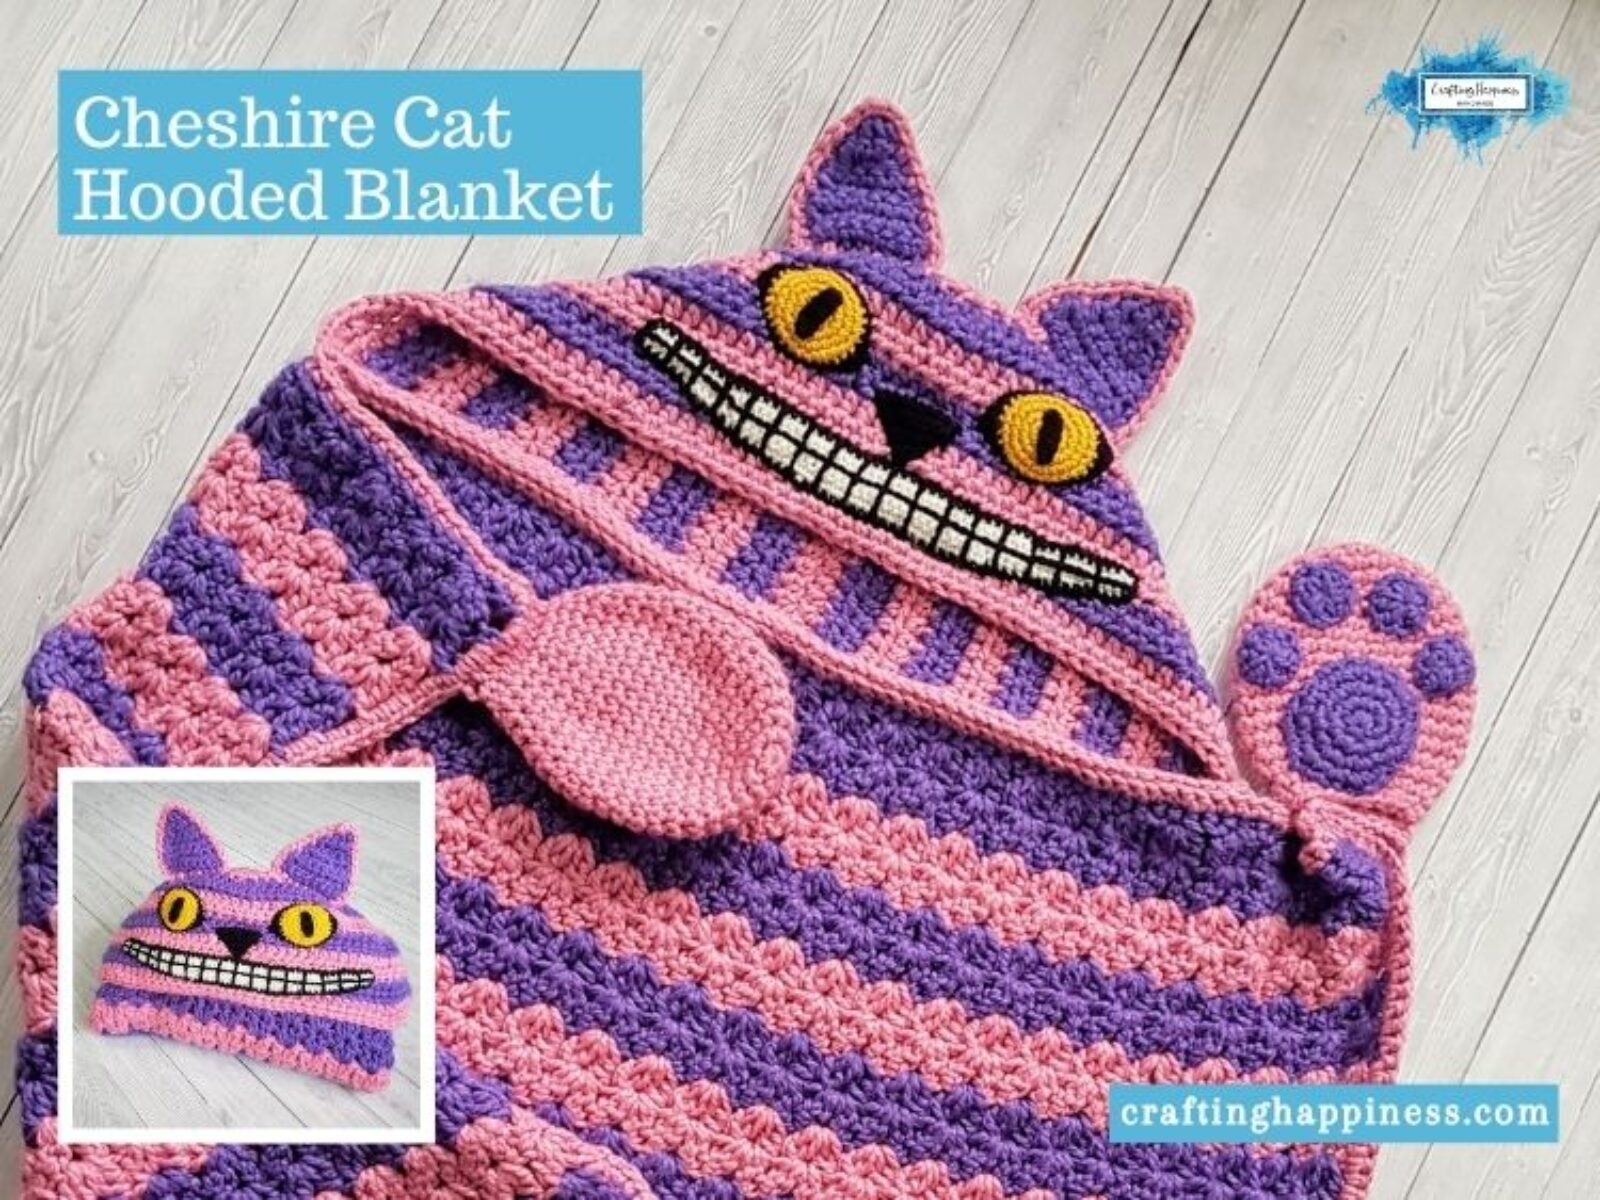 2in1 Cheshire Cat Hooded Blanket Crochet Pattern Crafting Happiness